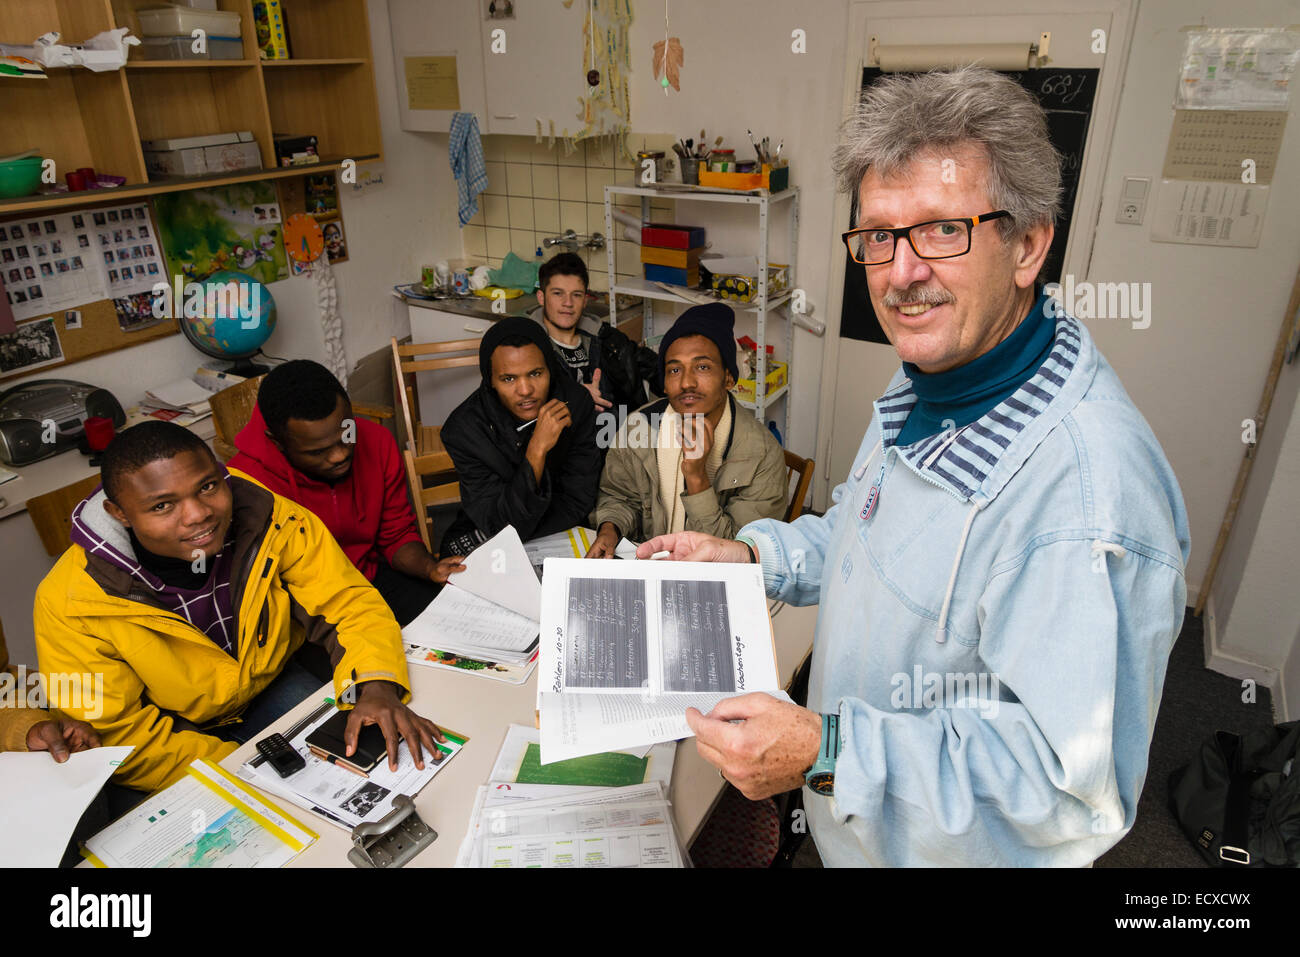 A retired social worker, working as a volunteer now (right), gives a lesson in German language to mostly African - Stock Image